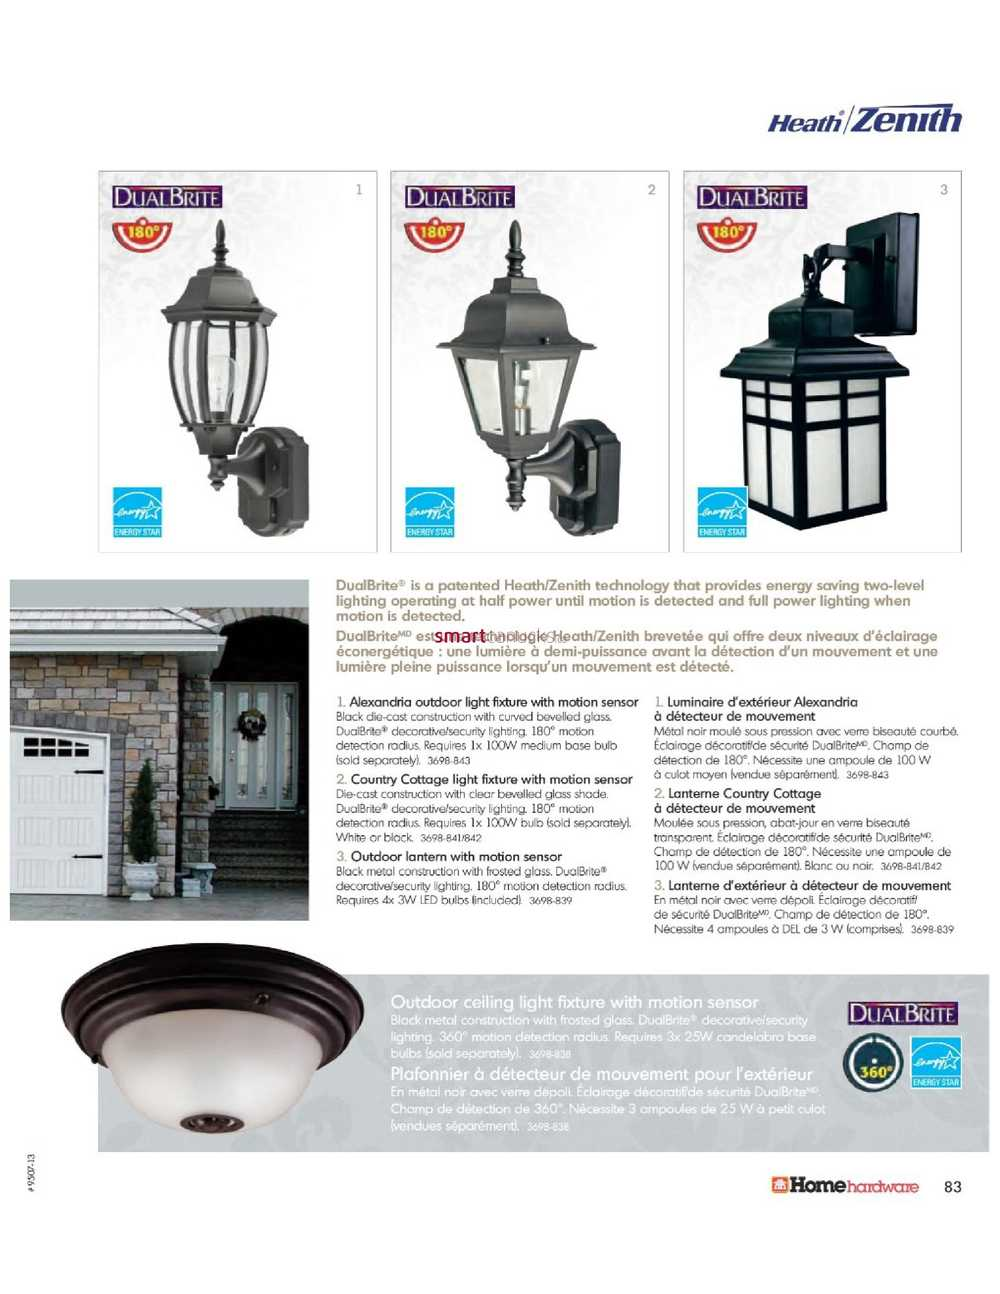 Eclairage Exterieur Home Depot Home Hardware Lighting Electrical Catalog